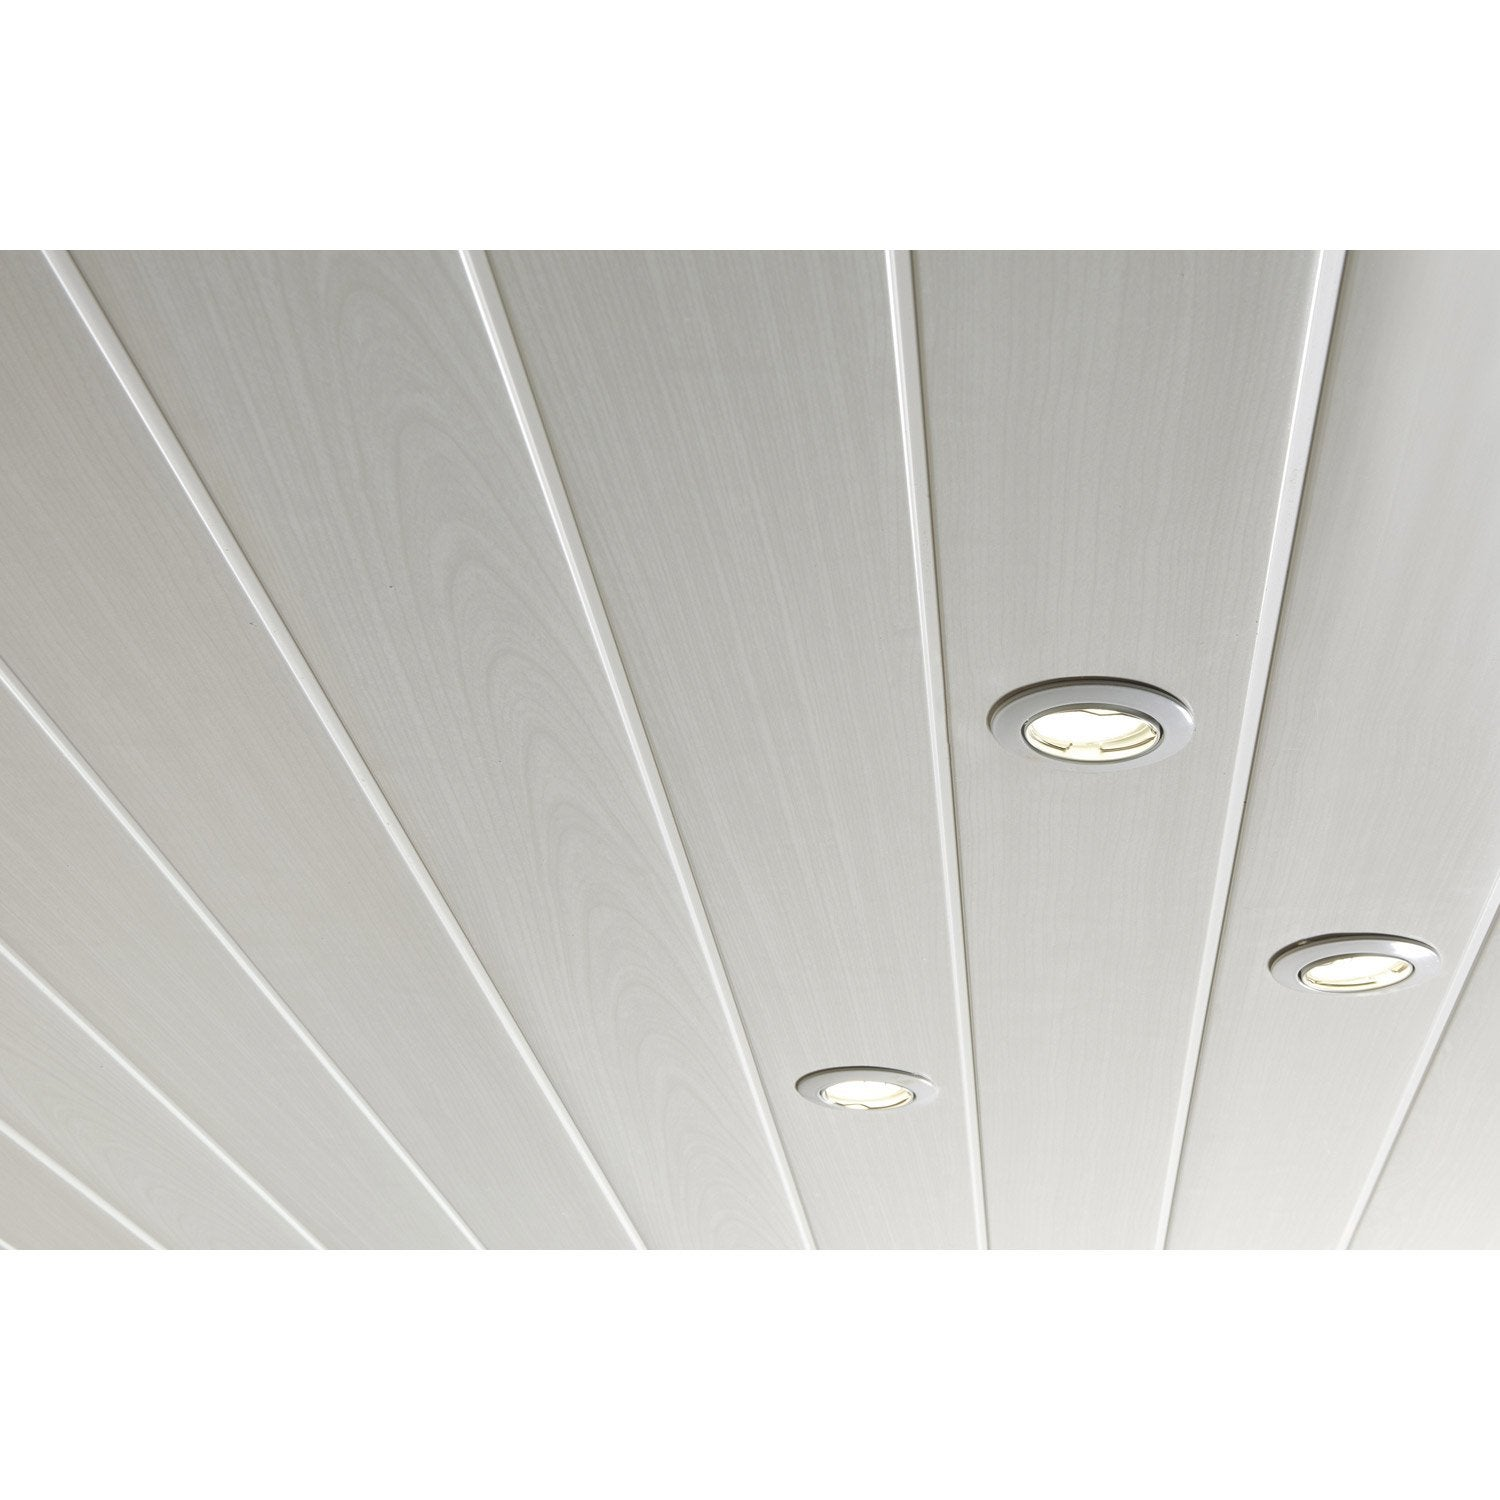 Pose de lambris pvc en plafond tours prix travaux for Comment poser du lambris pvc